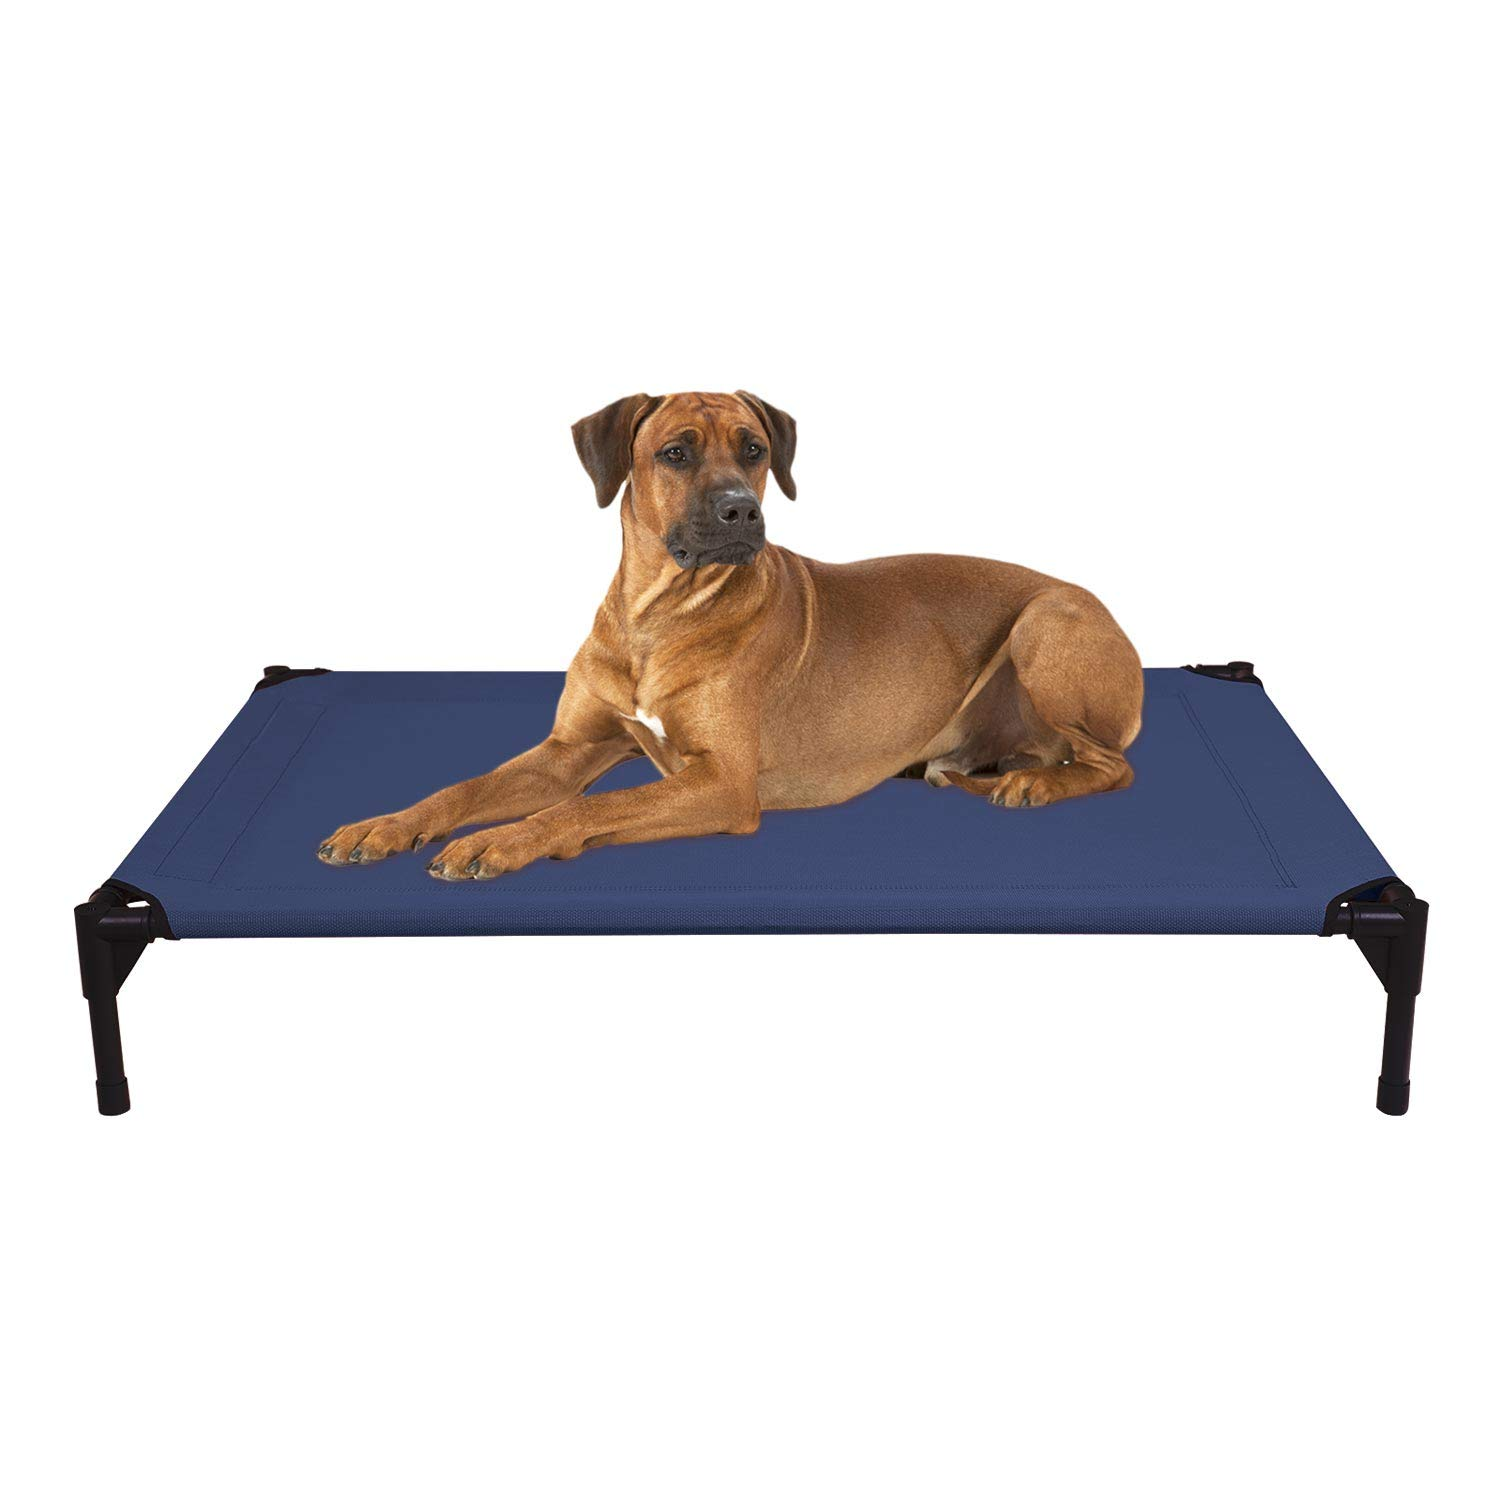 Veehoo Cooling Elevated Dog Bed, Portable Raised Pet Cot with Washable & Breathable Mesh, No-Slip Rubber Feet for Indoor & Outdoor Use, Large, Blue by Veehoo